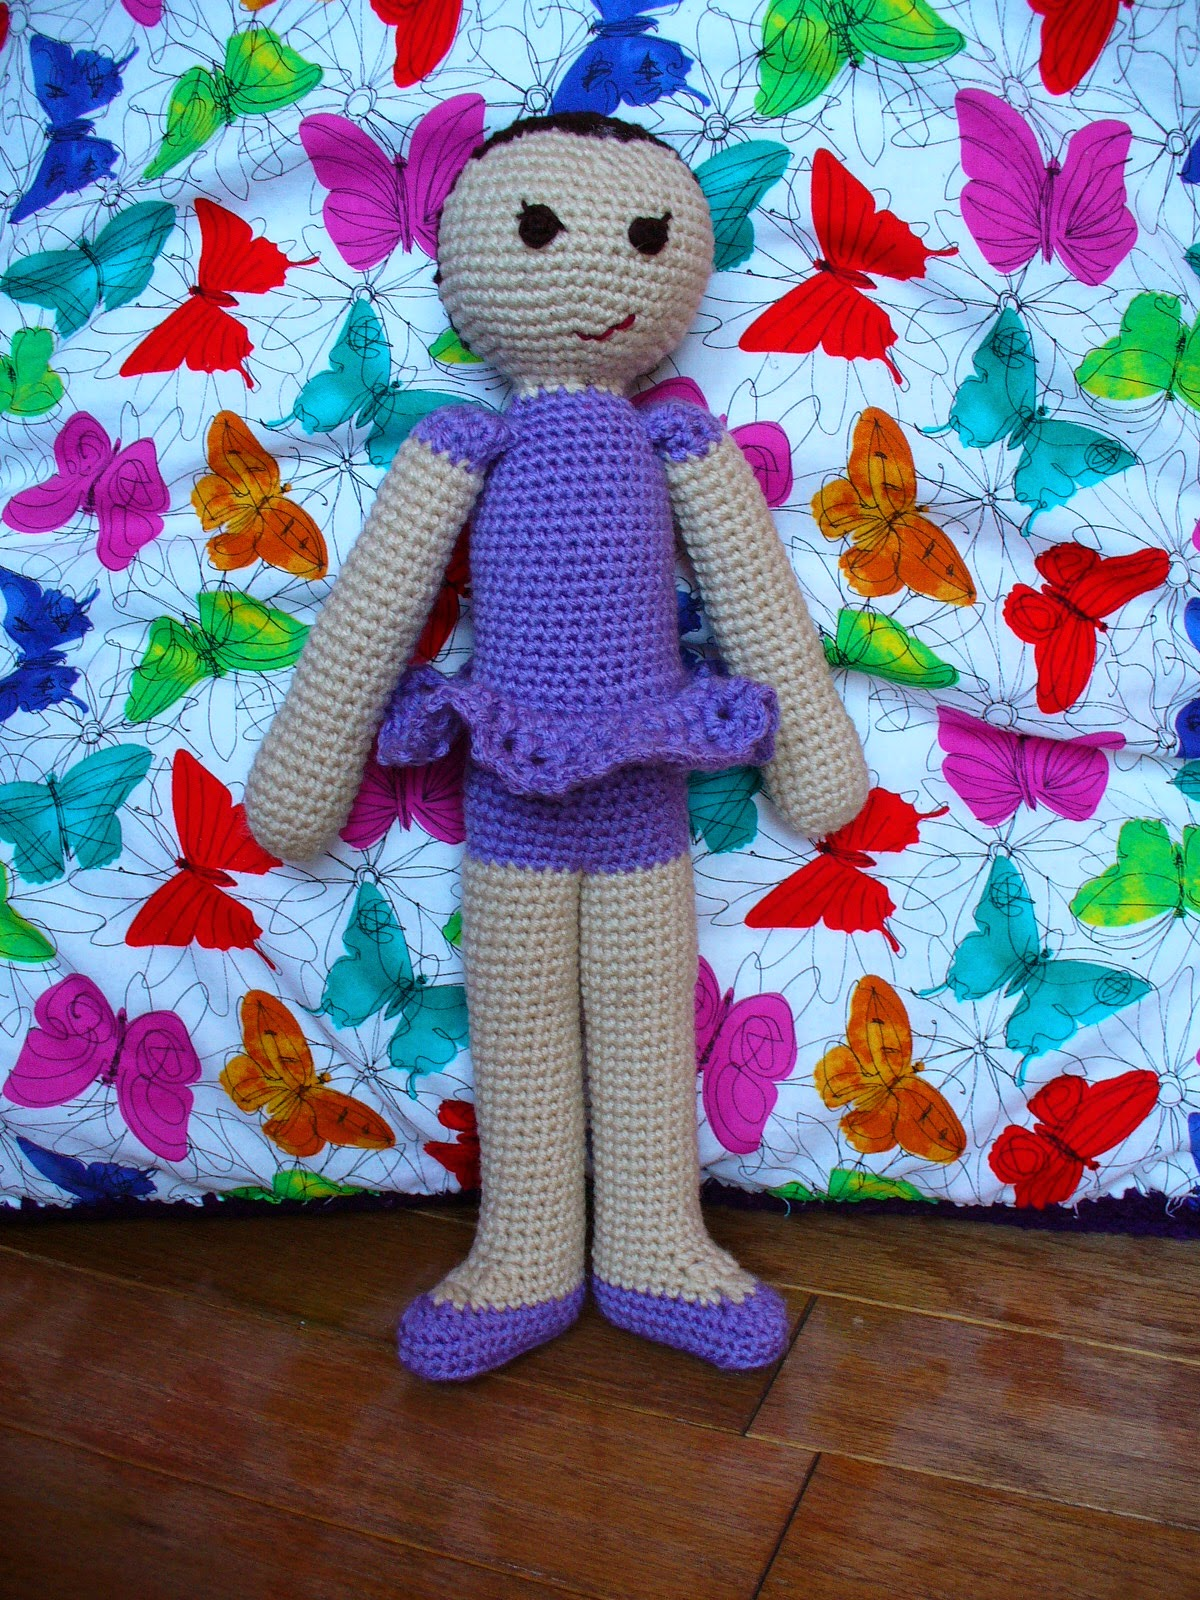 Amigurumi Pattern Person : Sanity by Stitches: Amigurumi Person - Pattern